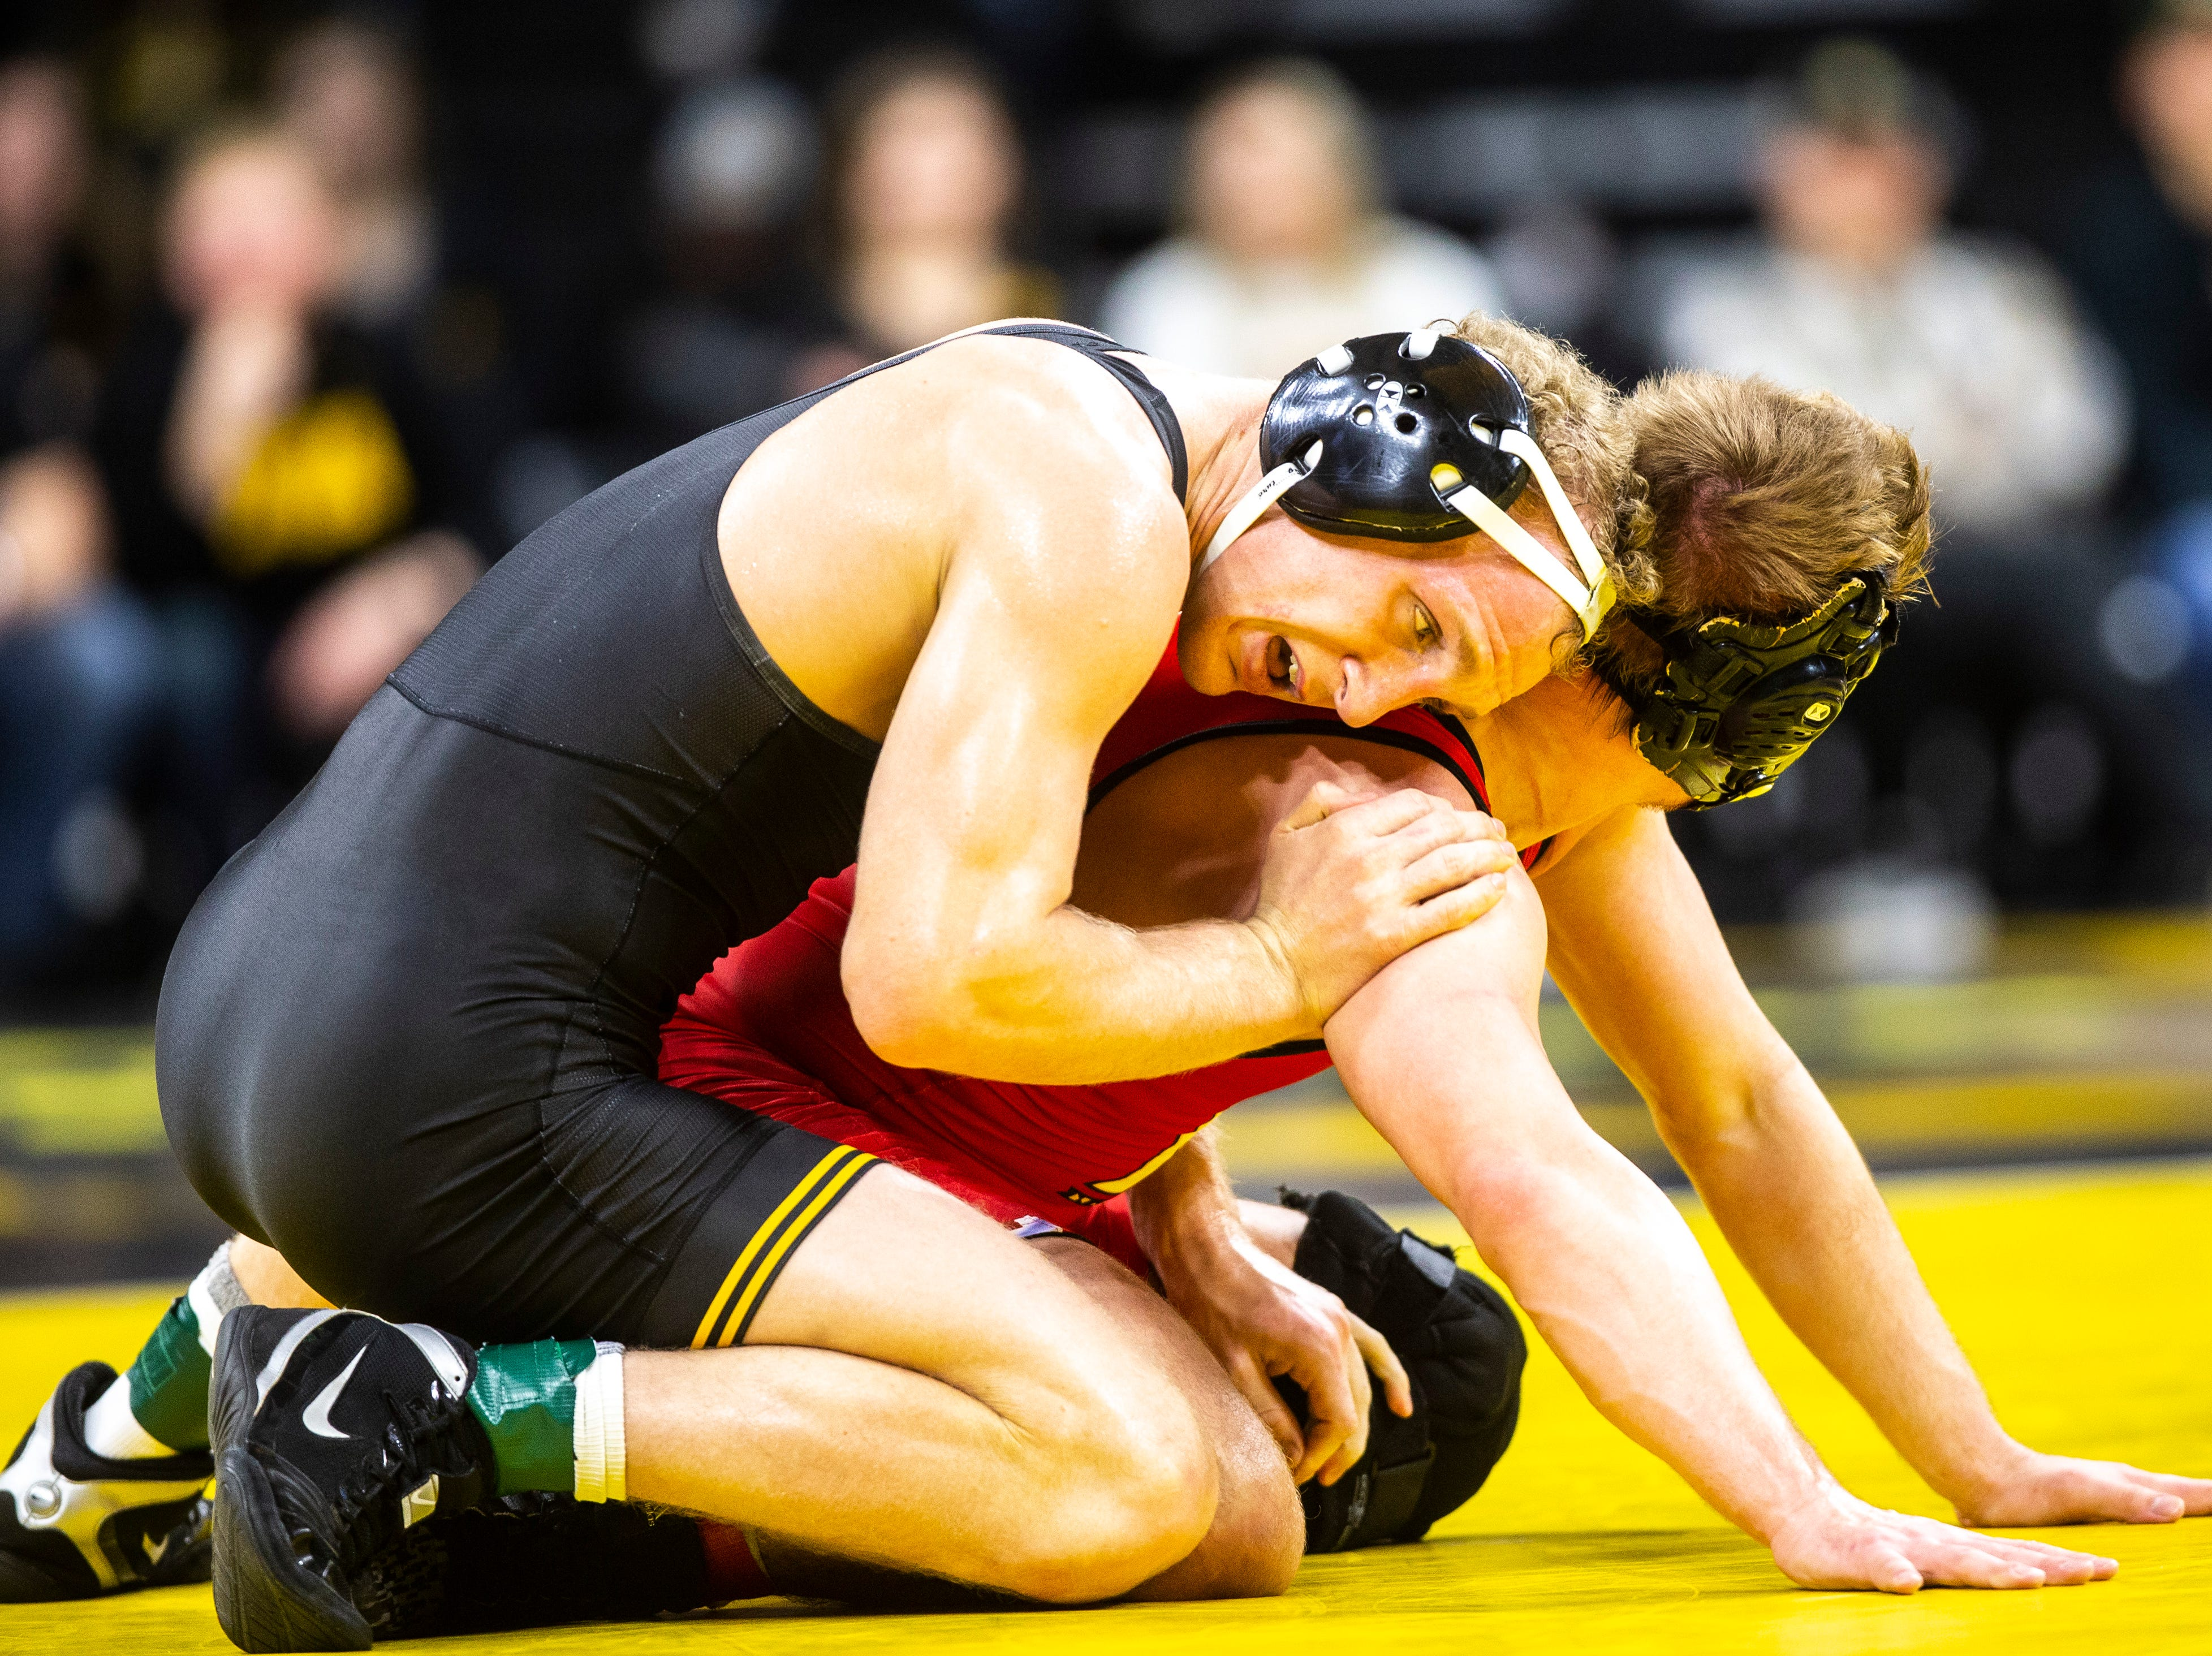 Iowa's Kaleb Young, left, wrestles Maryland's Ryan Diehl at 157 during a NCAA Big Ten Conference wrestling dual on Friday, Feb. 8, 2019 at Carver-Hawkeye Arena in Iowa City, Iowa.